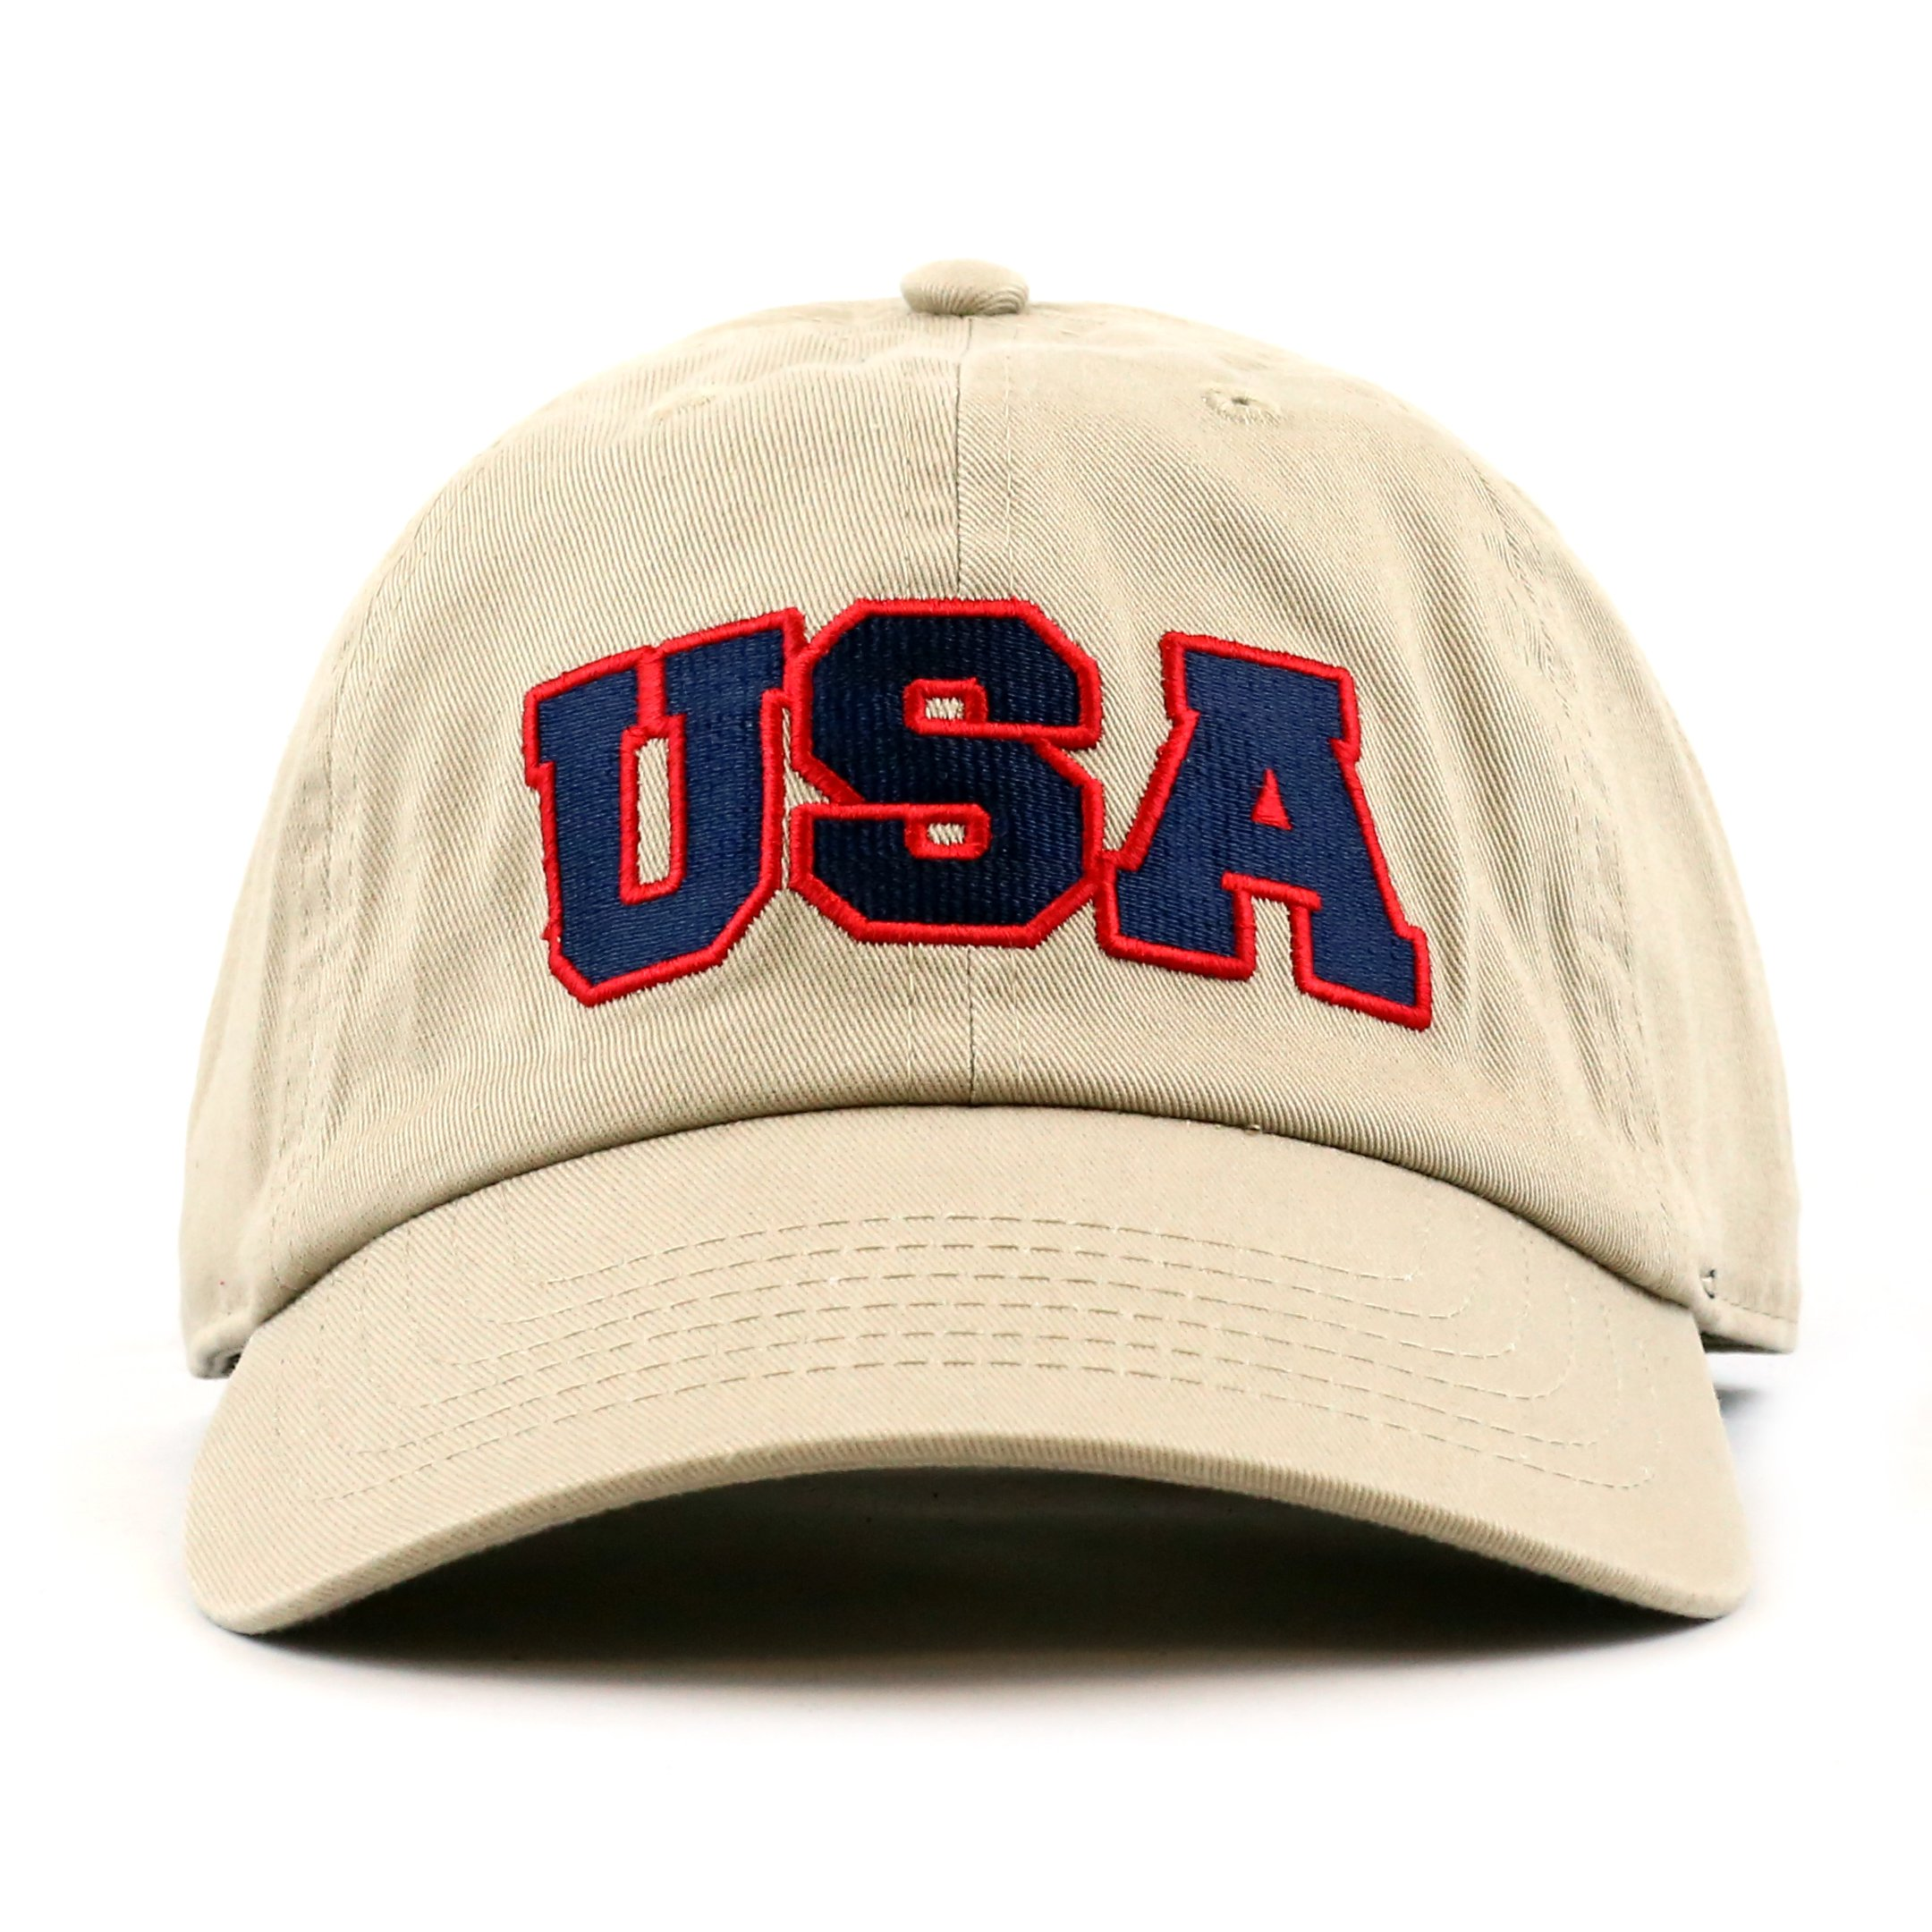 THE HAT DEPOT 300n1405 USA Embroidery Cotton Cap-4colors (Khaki)